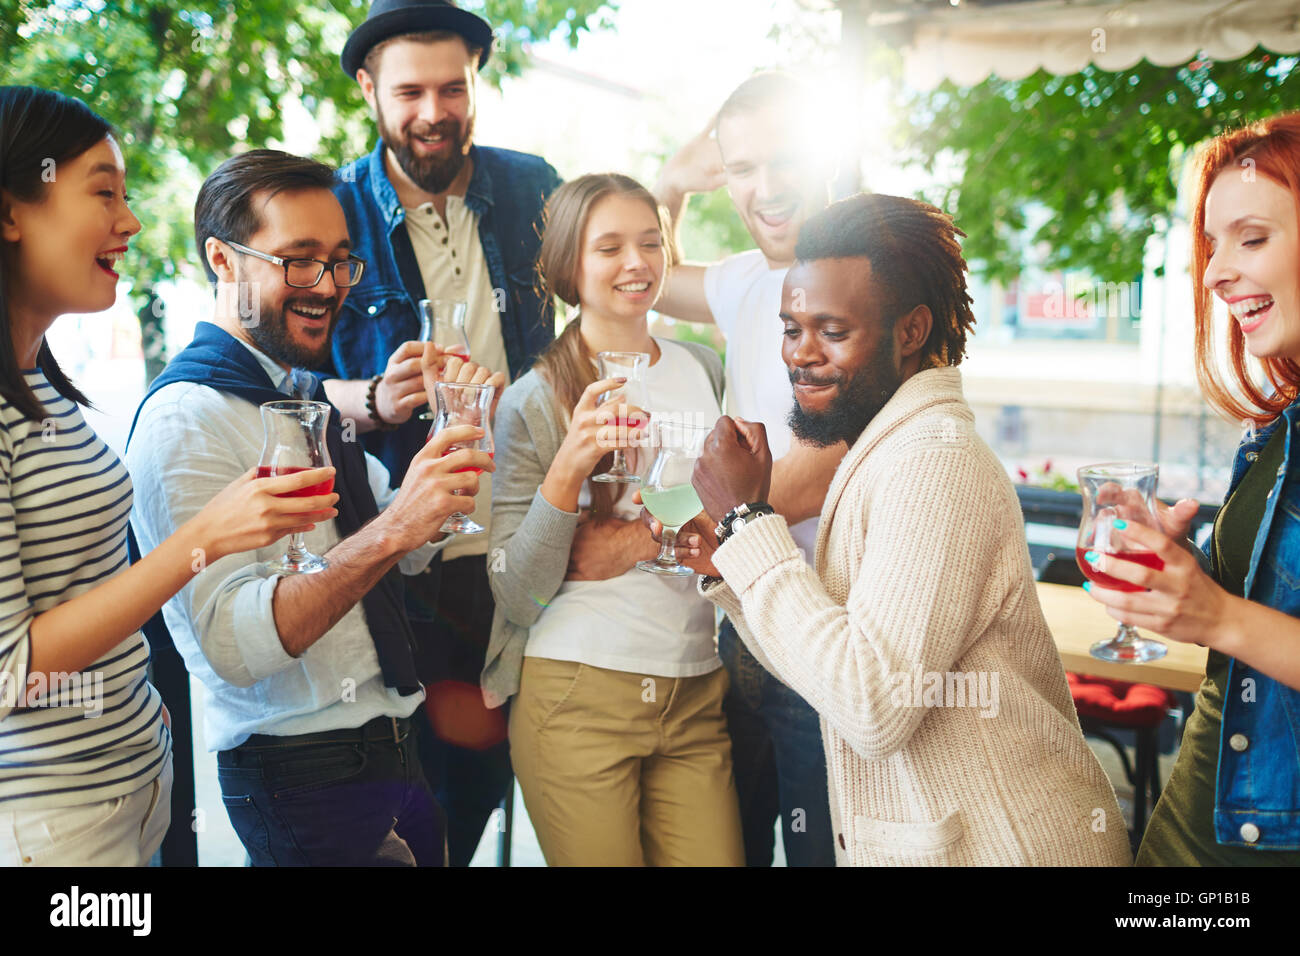 Intercultural friends having nice time in outdoor cafe - Stock Image